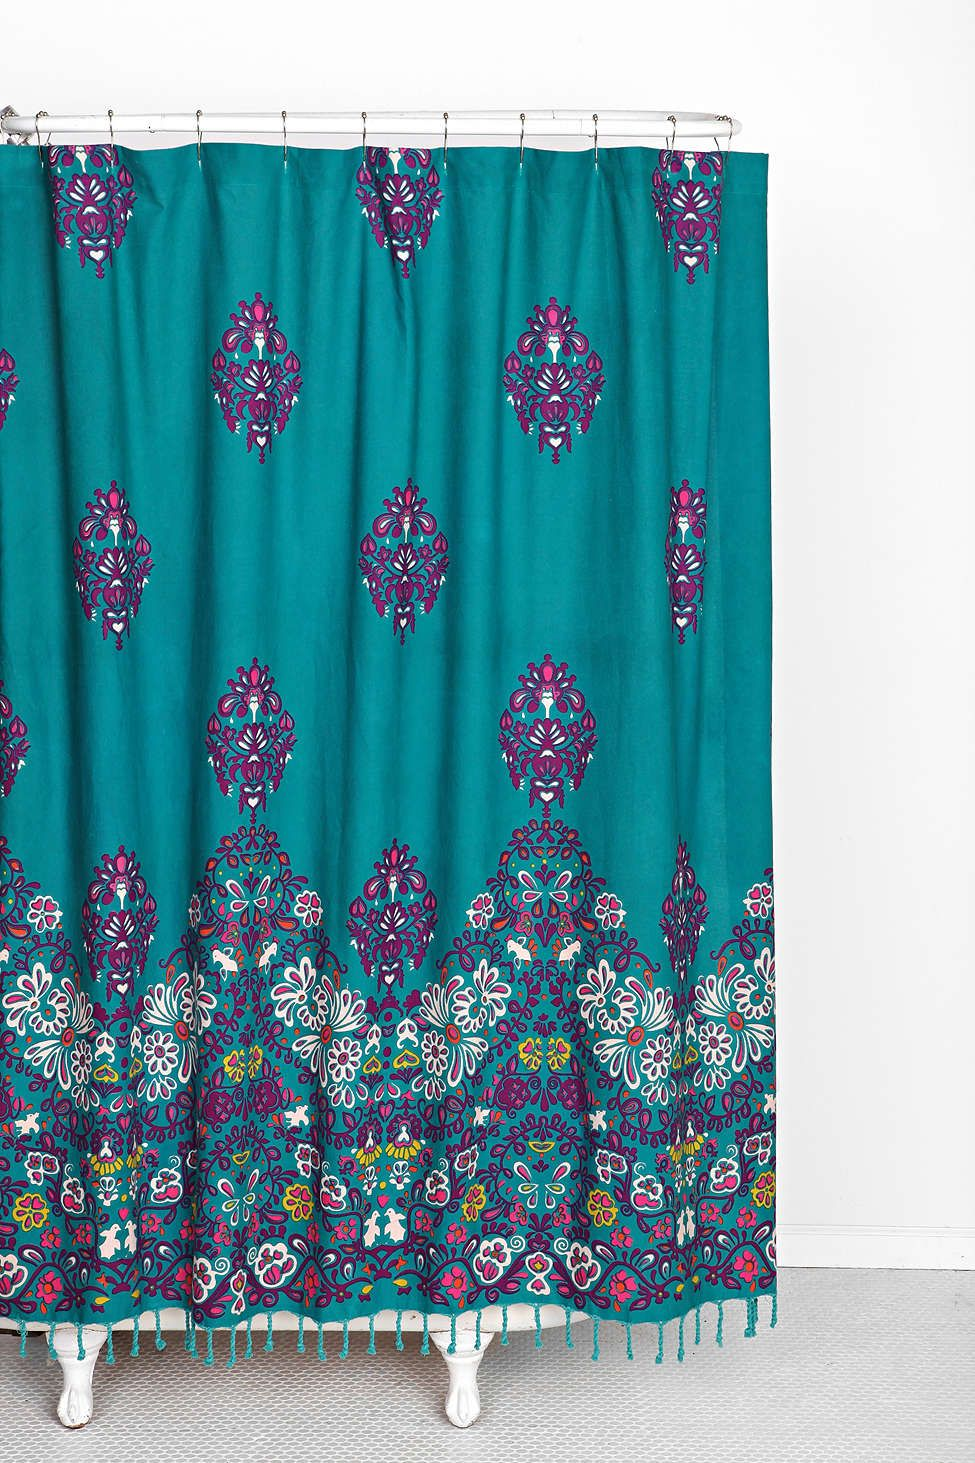 Plum Bow Blomma Shower Curtain Urban Outfitters New Bathroom